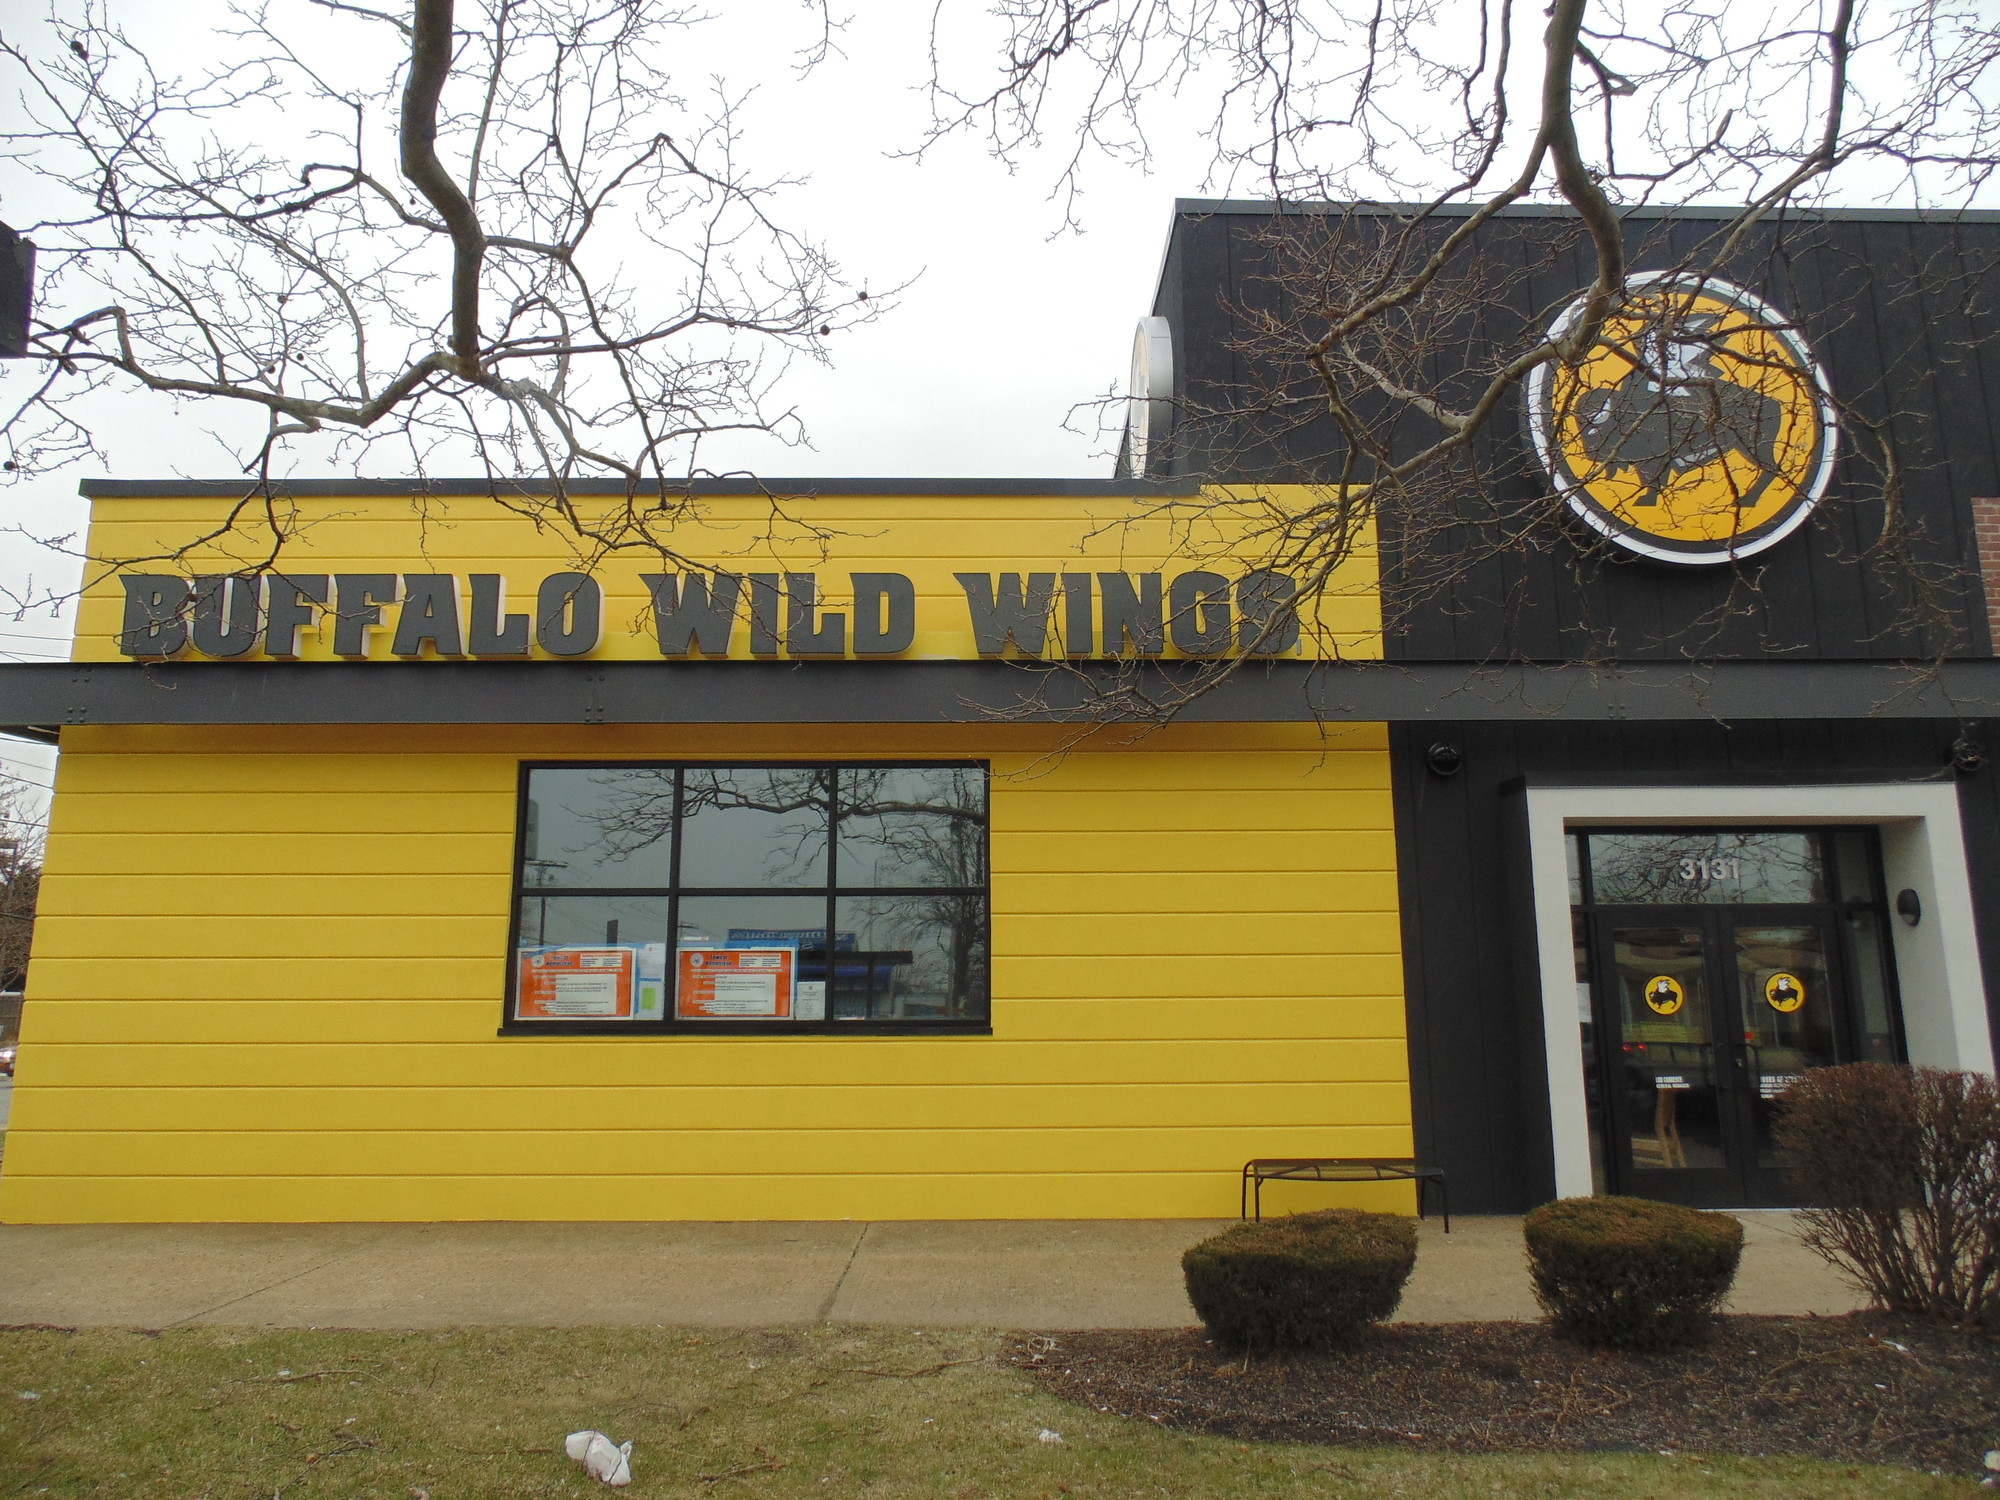 Buffalo Wild Wings Hours. Buffalo Wild Wings hours start late morning and end around midnight. Some Buffalo Wild Wings hours run later than midnight if it's on a weekend. That's great if you're a night owl and a party animal. You will love to kick back with some good friends and watch sports while temporarily escaping from studies or your job.